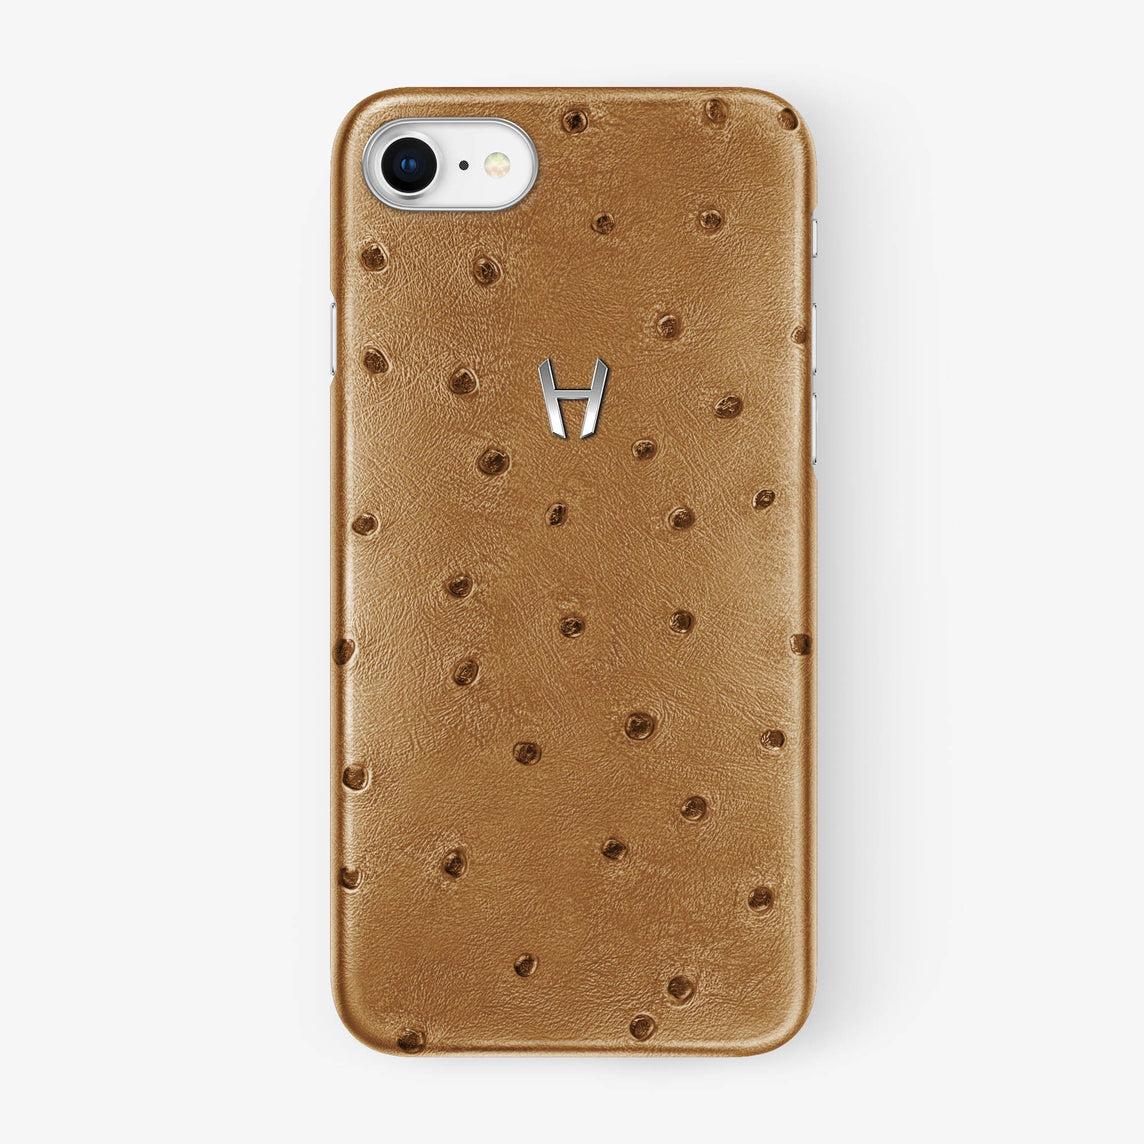 Ostrich Case iPhone 7/8 | Chestnut - Stainless Steel without-personalization